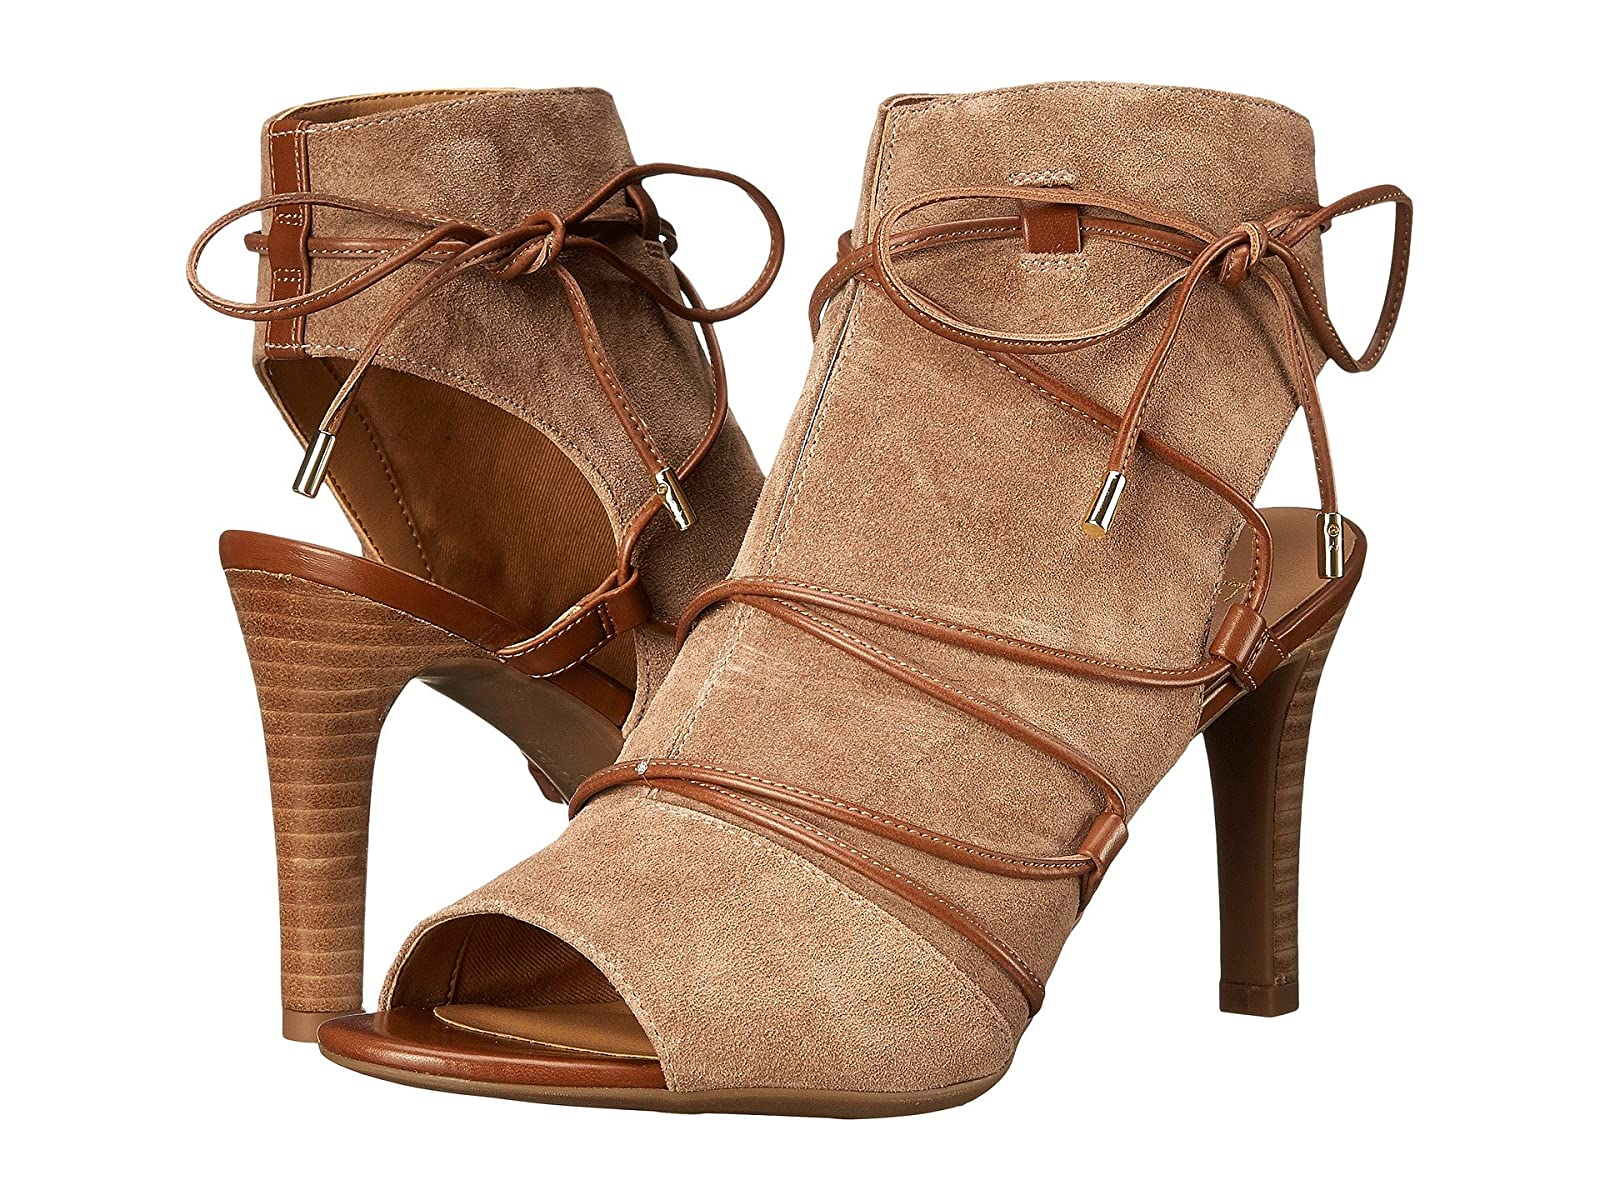 Franco Sarto QuineraCheap and distinctive eye-catching shoes